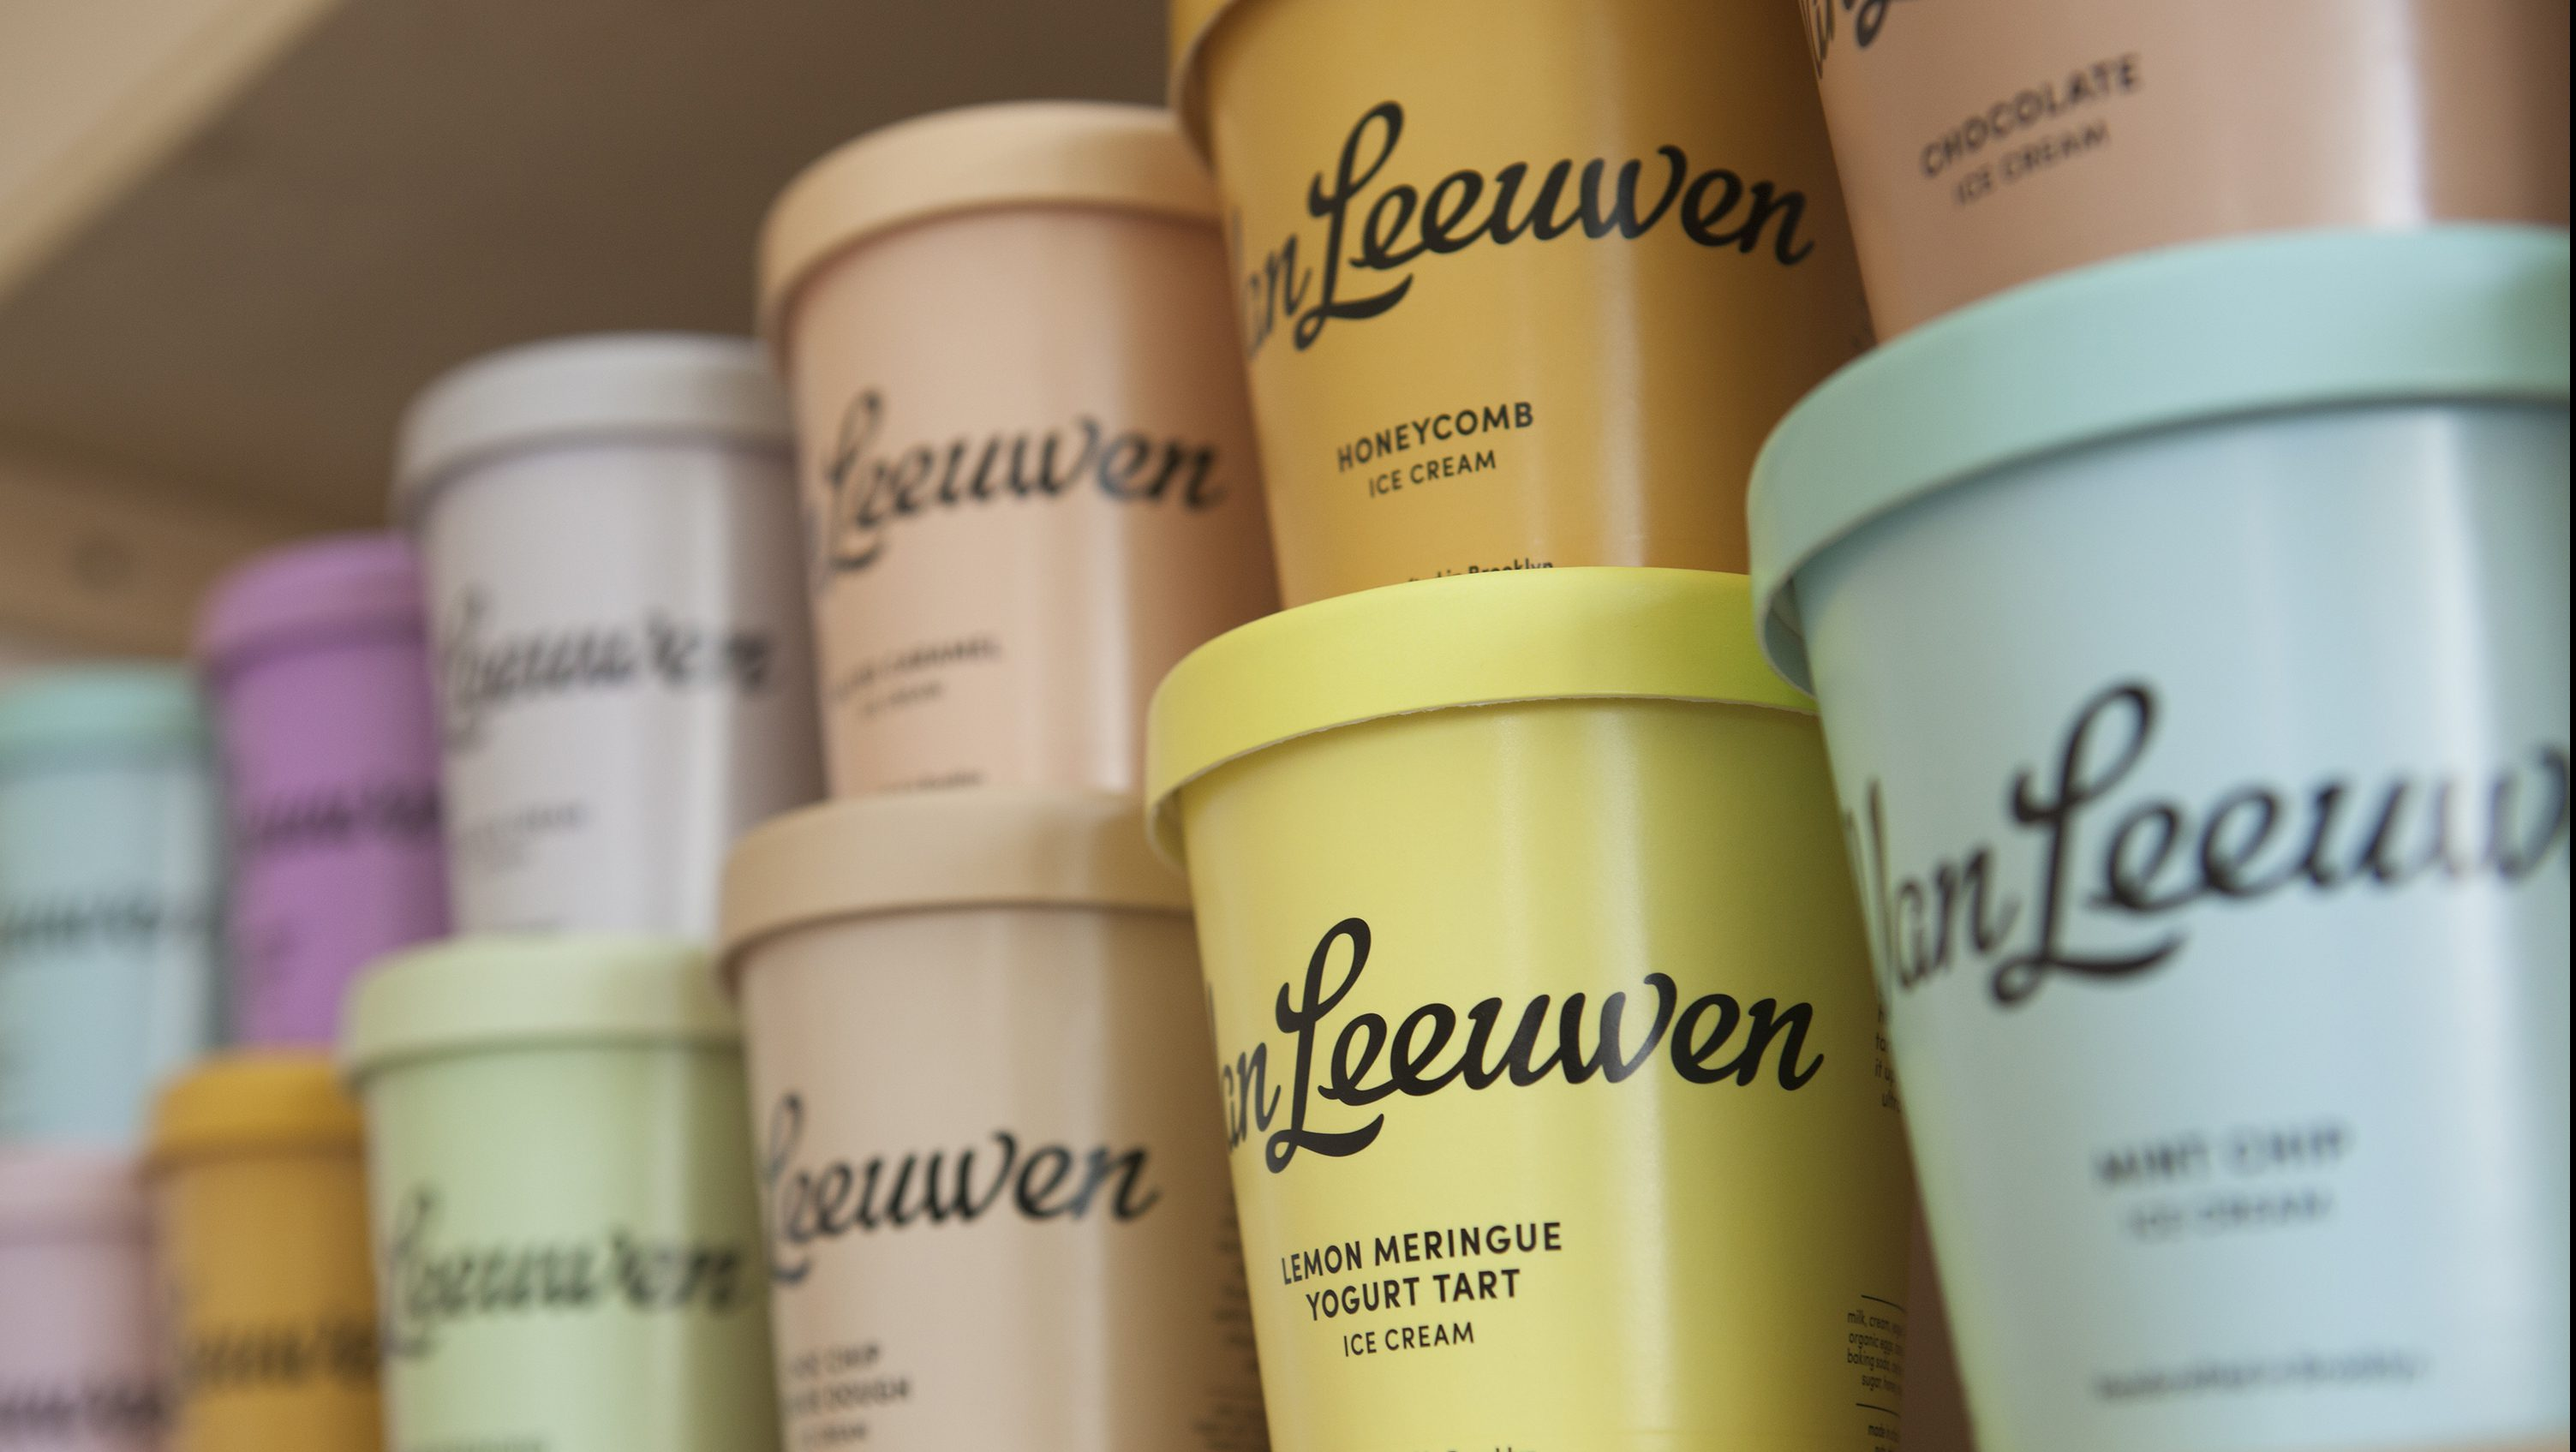 Van Leeuwen Artisanal Ice Cream Increased Sales By 50 After It